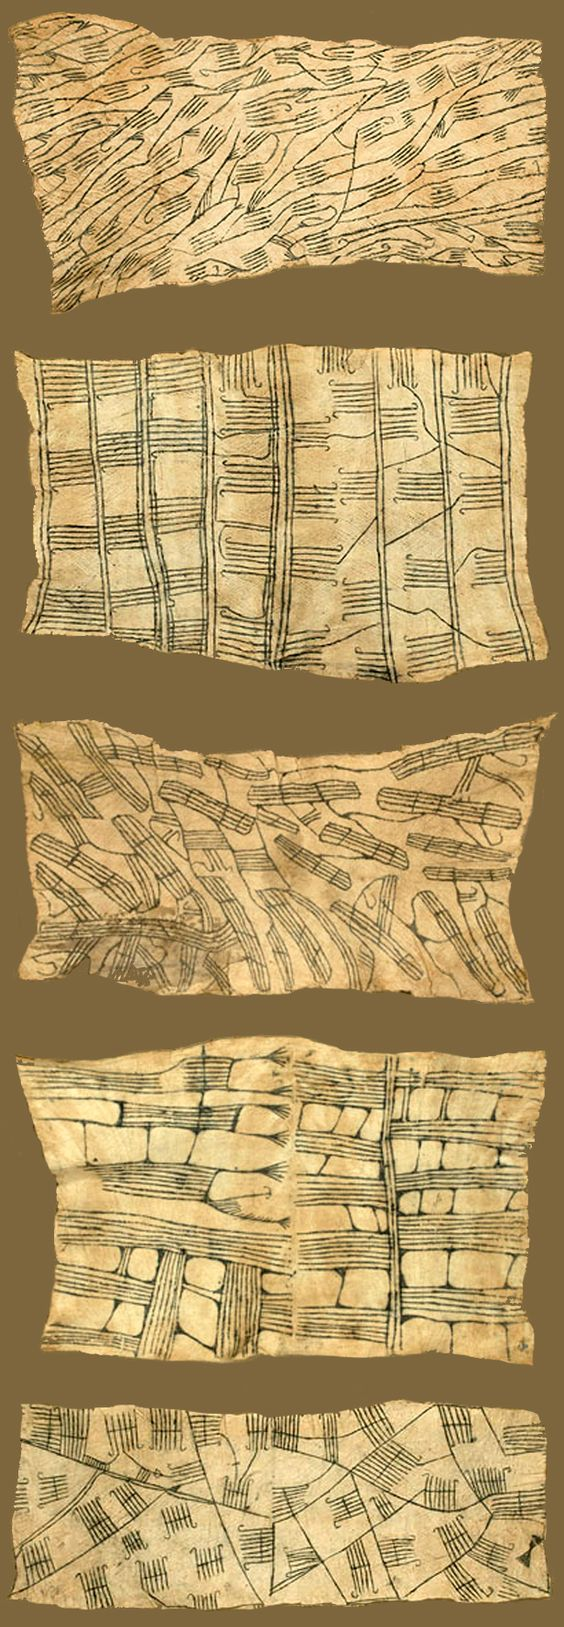 Africa | Bark cloth painting by the M'bute Pygmy people living in the Ituri Rain Forest of the Congo | Predominantly from the 1930s | The fabric is a pounded tree bark; the painting was done supposedly with a mixture of gardenia juice and carbon black.